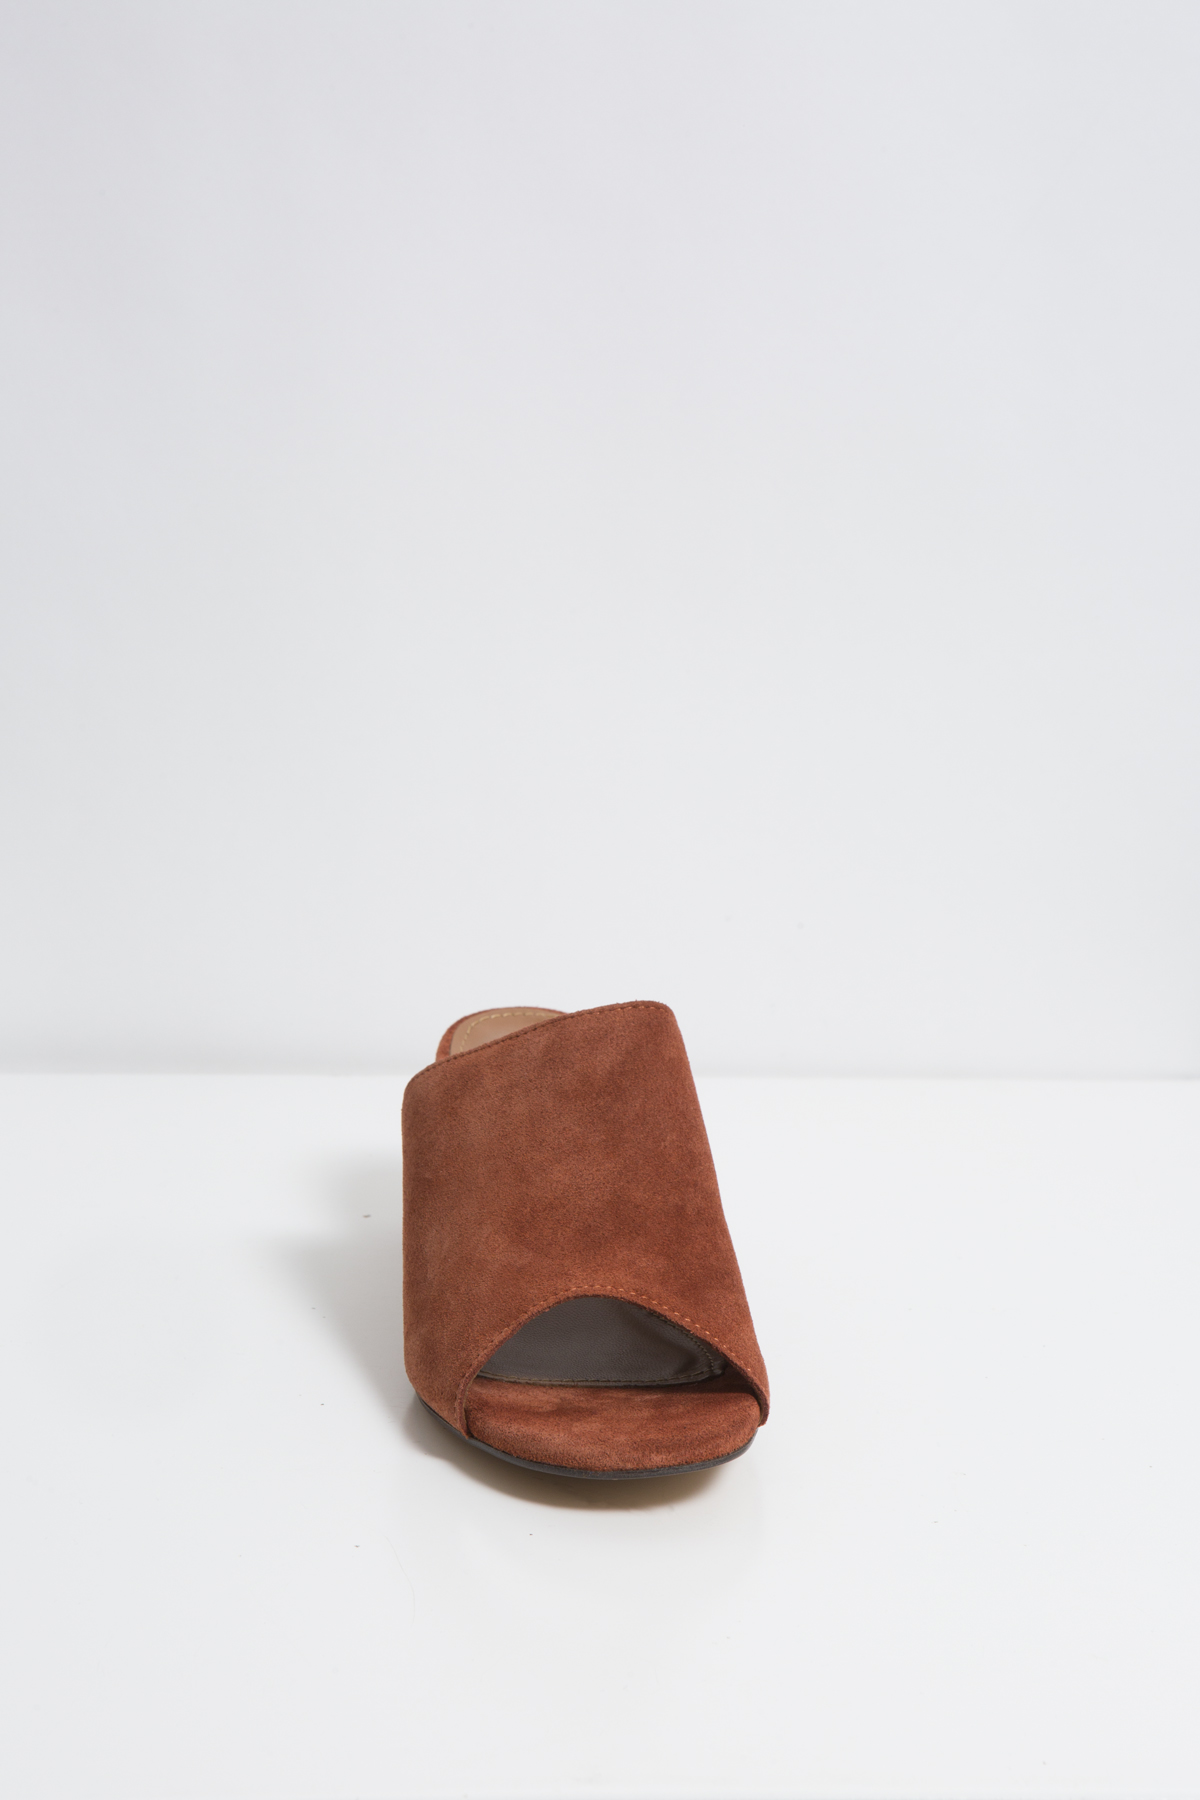 horizon-clay-mules-anthology-paris-suede-matchboxathens